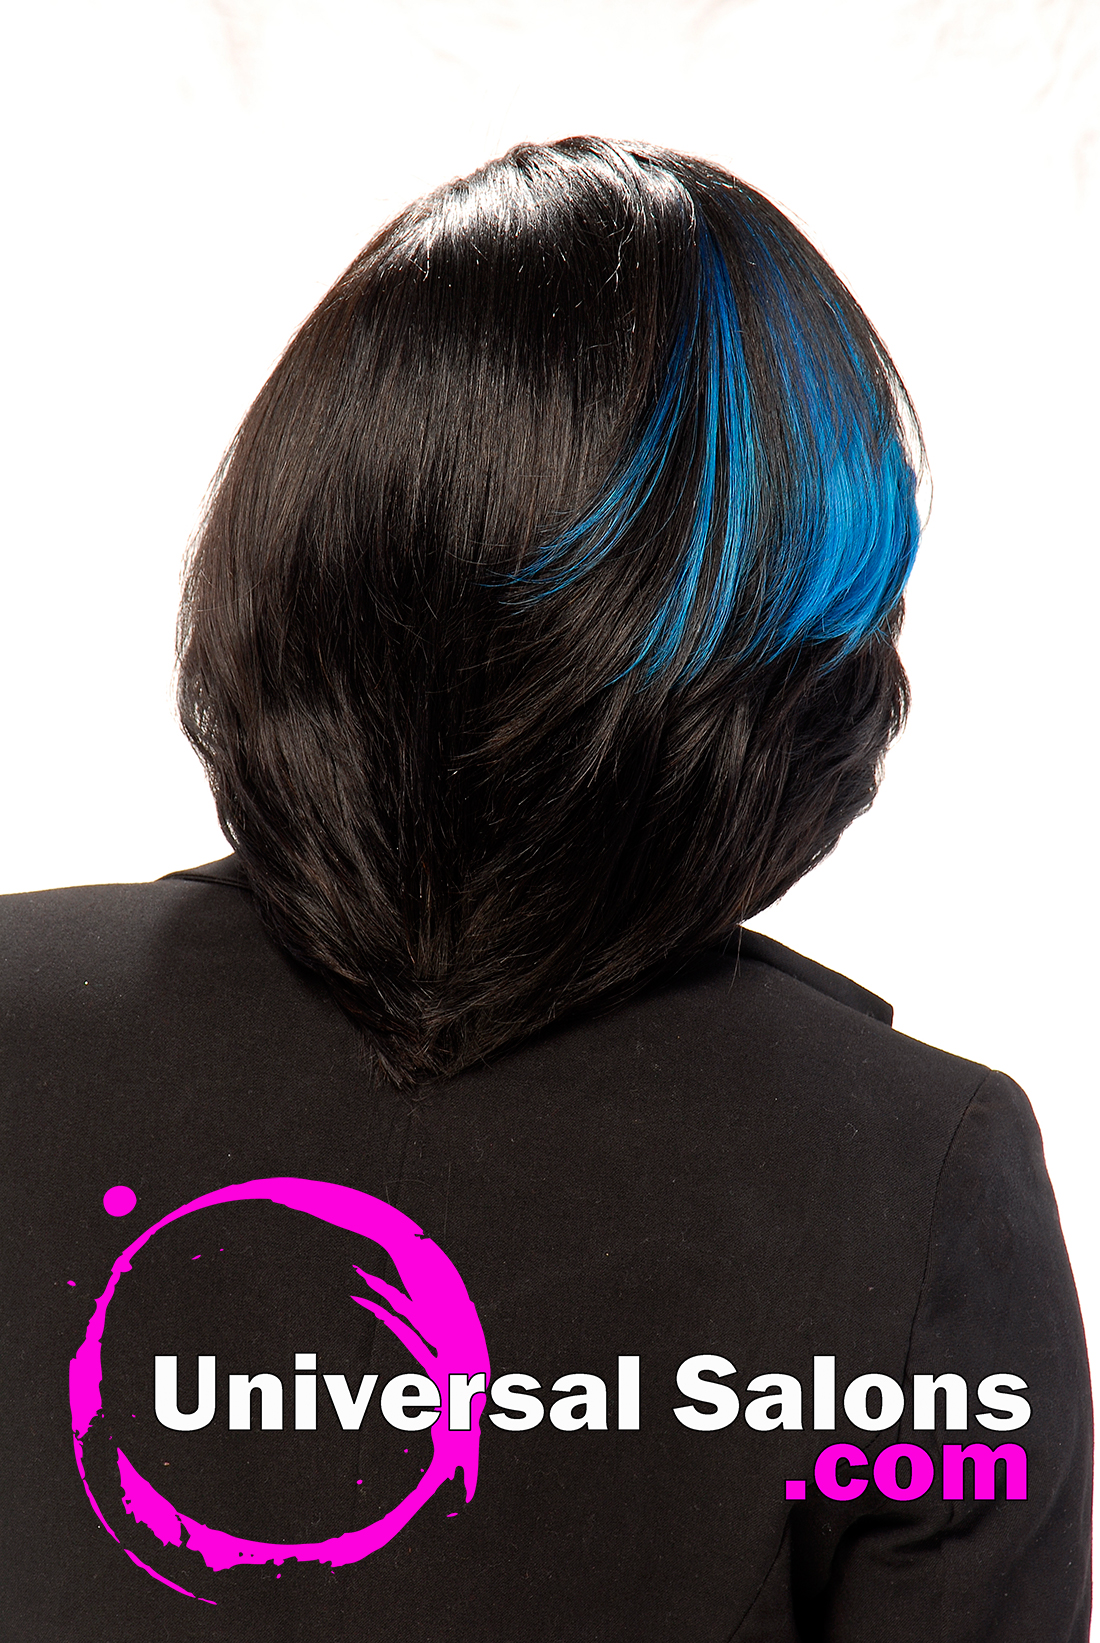 Bob Hairstyle with Blue Highlights from Denise Granberry